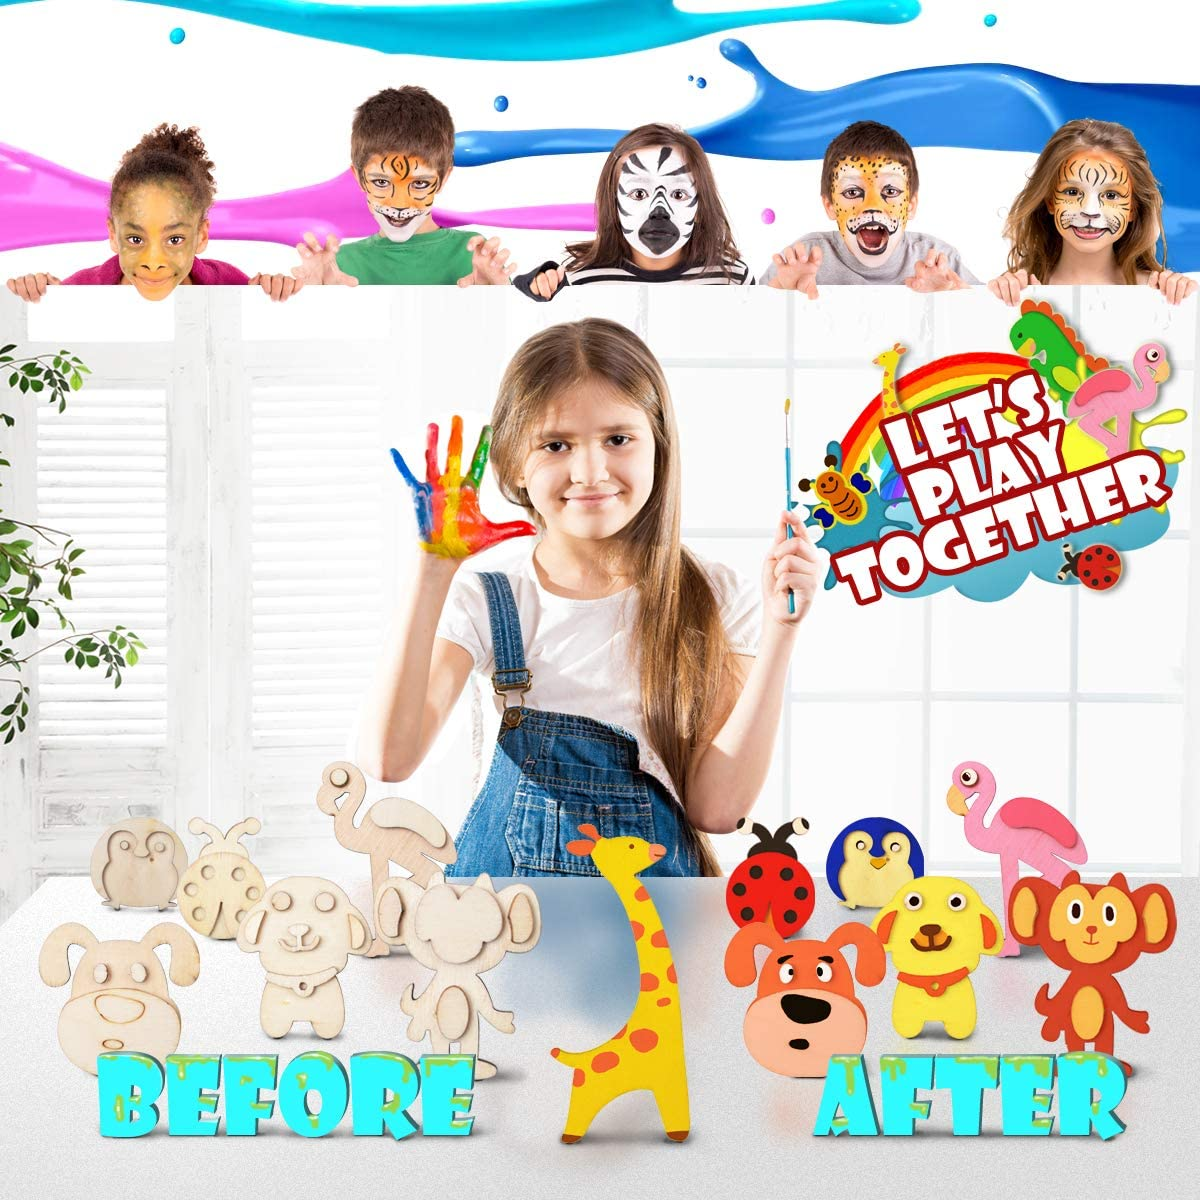 Creativity DIY Art and Crafts Supplies for Kids Lucheer Wooden Magnet Art Set Coloring Painting Educational Gift for Boys /& Girls Ages 3+ 20 PCS Wood Painting Craft Kit